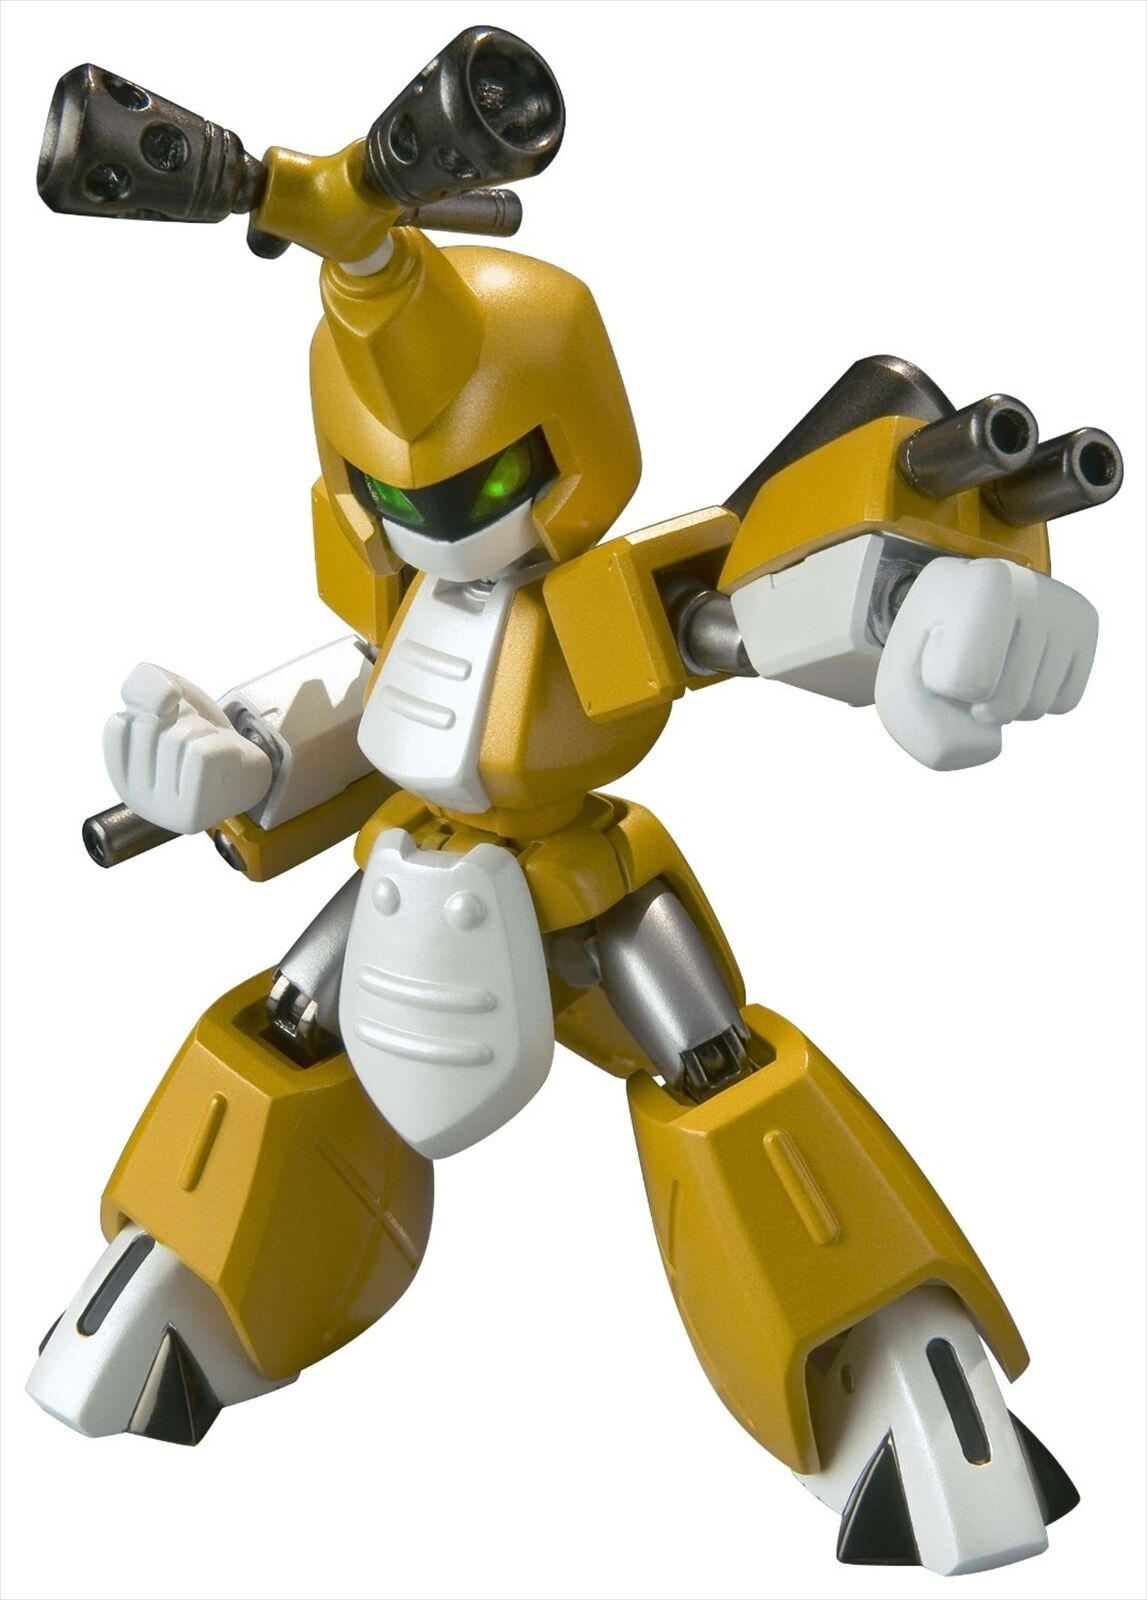 Bandai D-Arts Metaby Metaby Metaby Medared DS Action Figure 6e9922